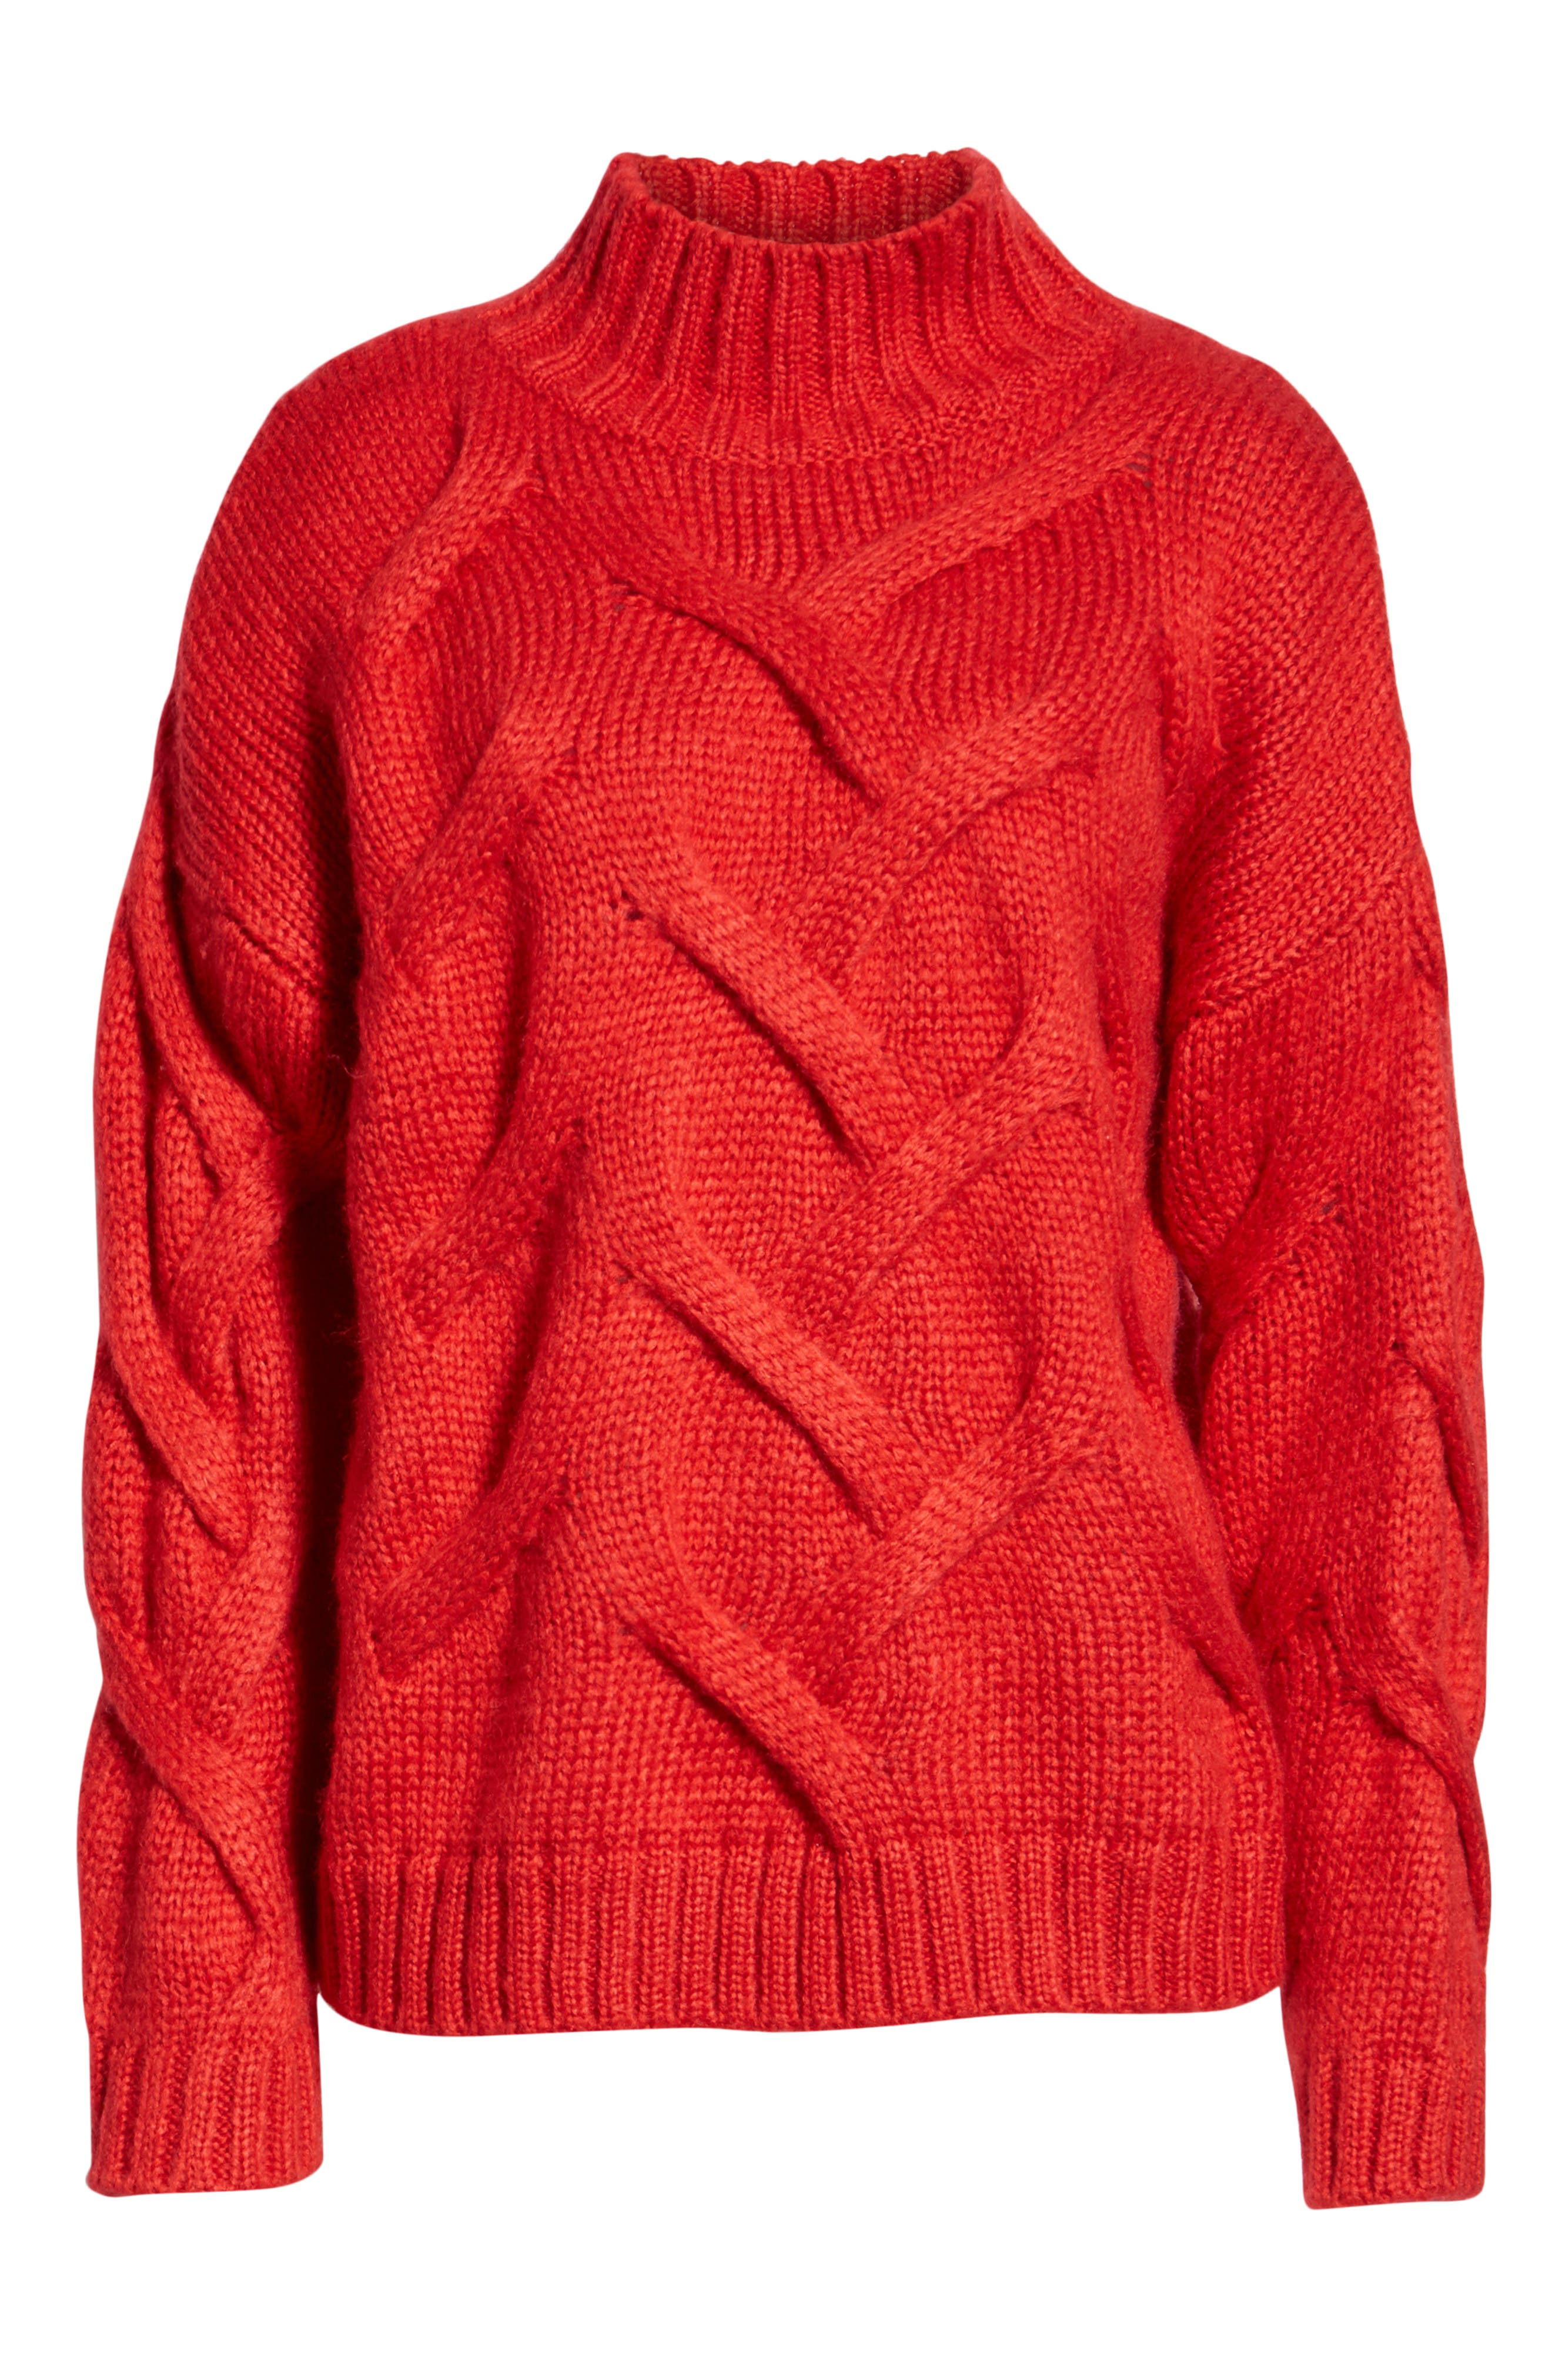 Cable Mock Neck Sweater,                             Alternate thumbnail 6, color,                             RED